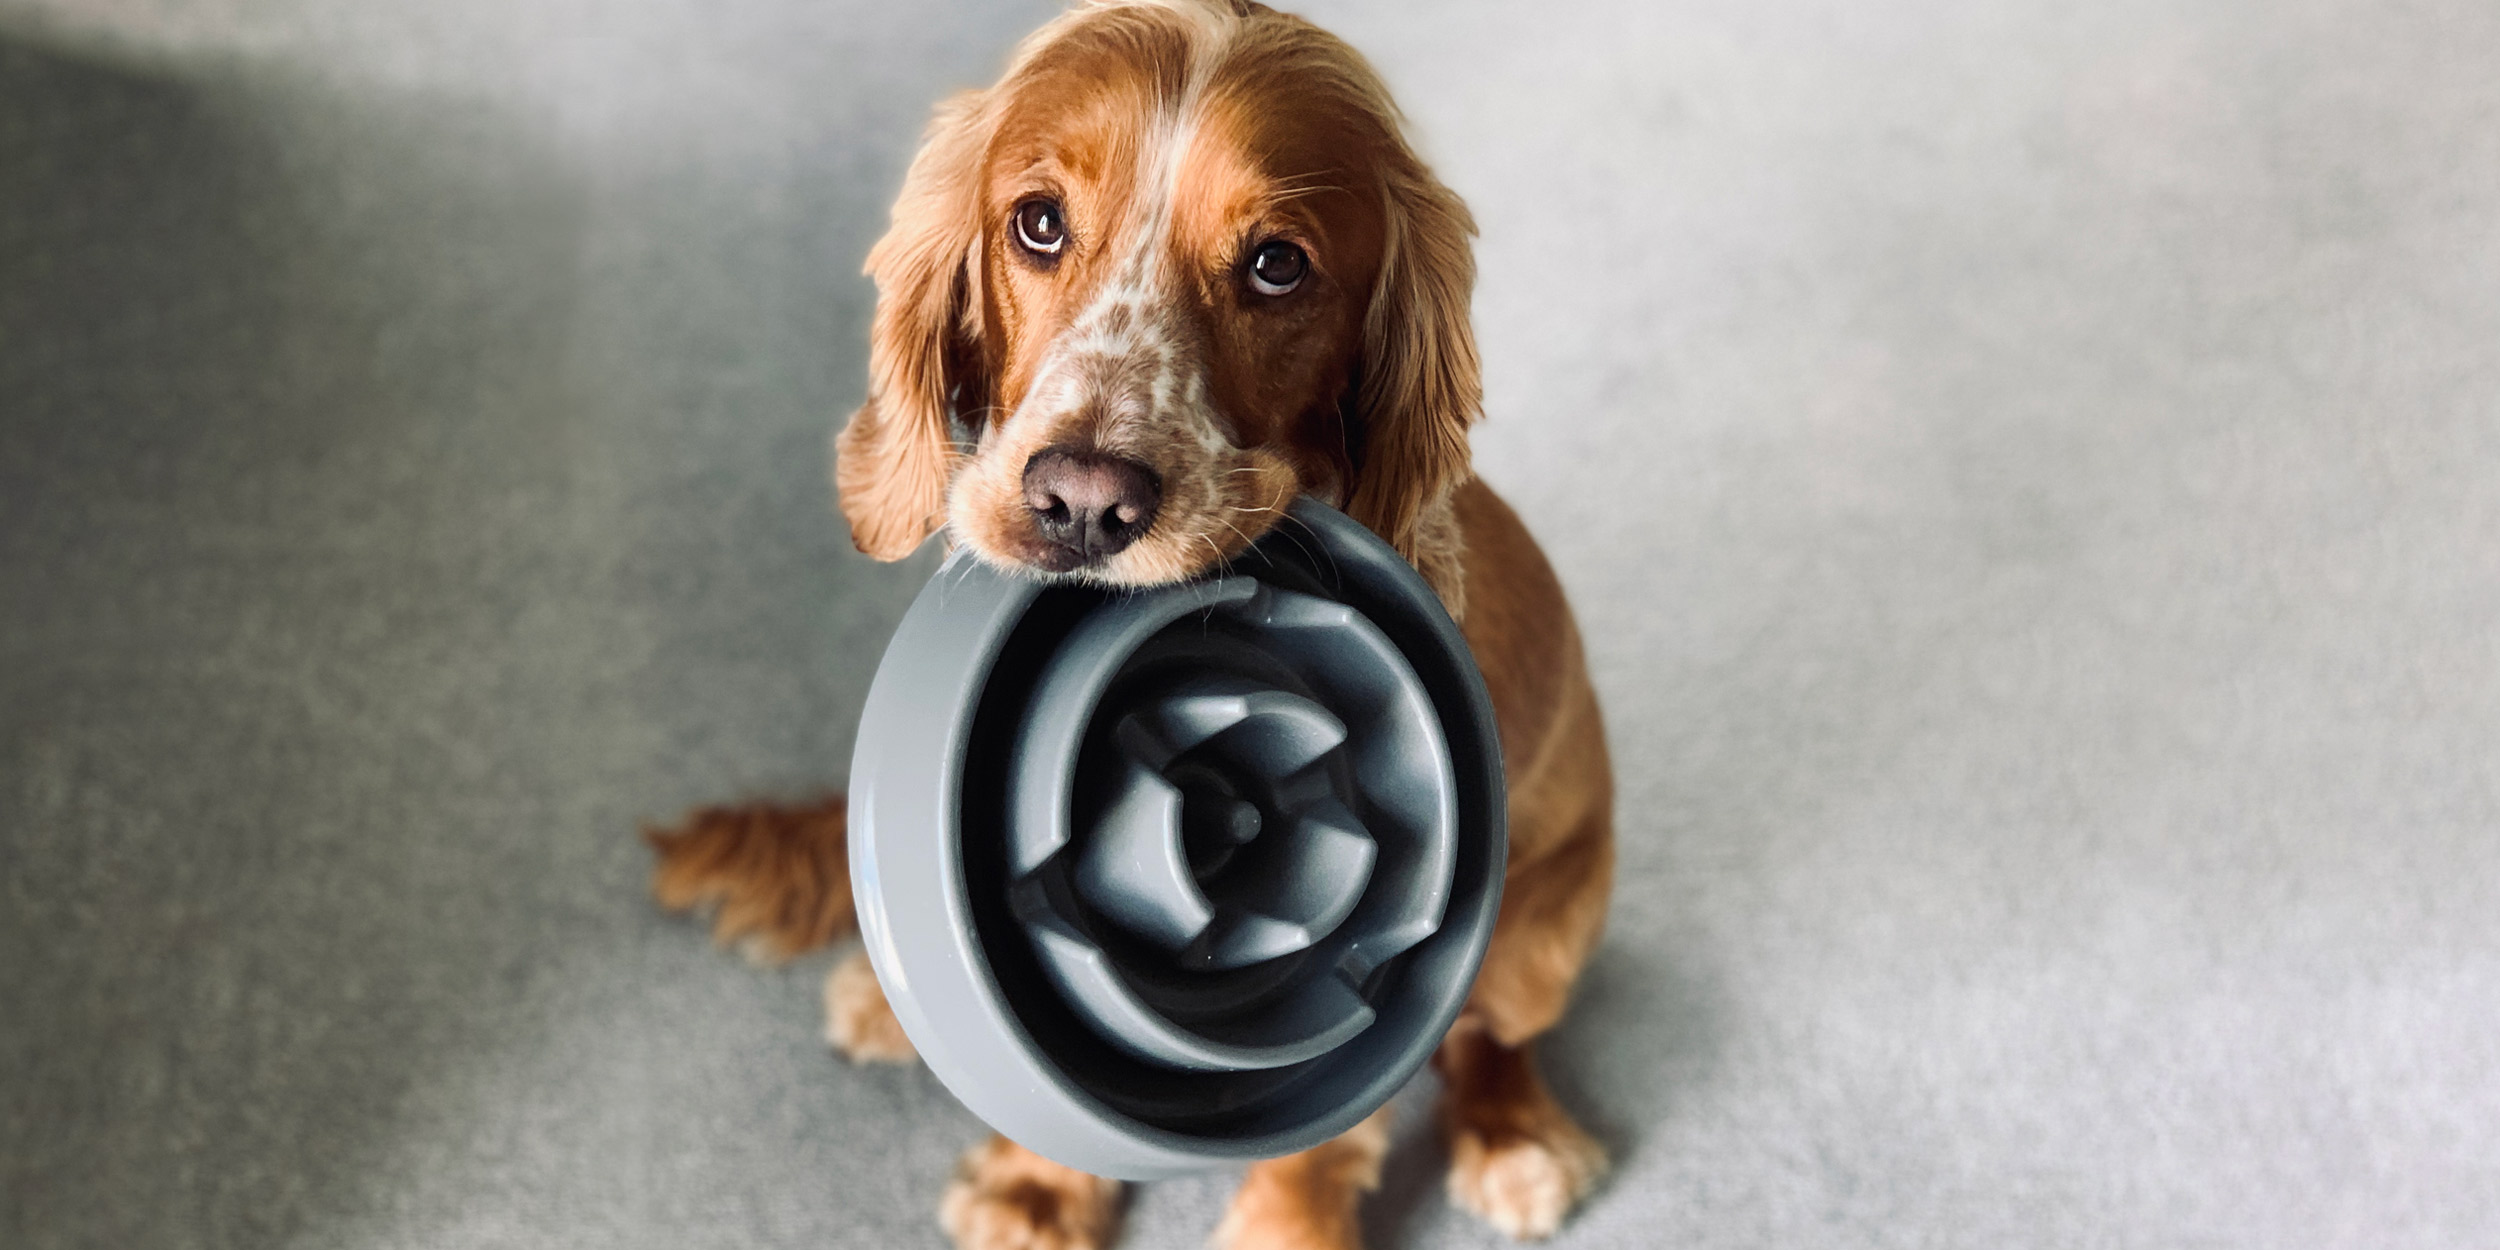 The best dog food, according to experts and veterinarians